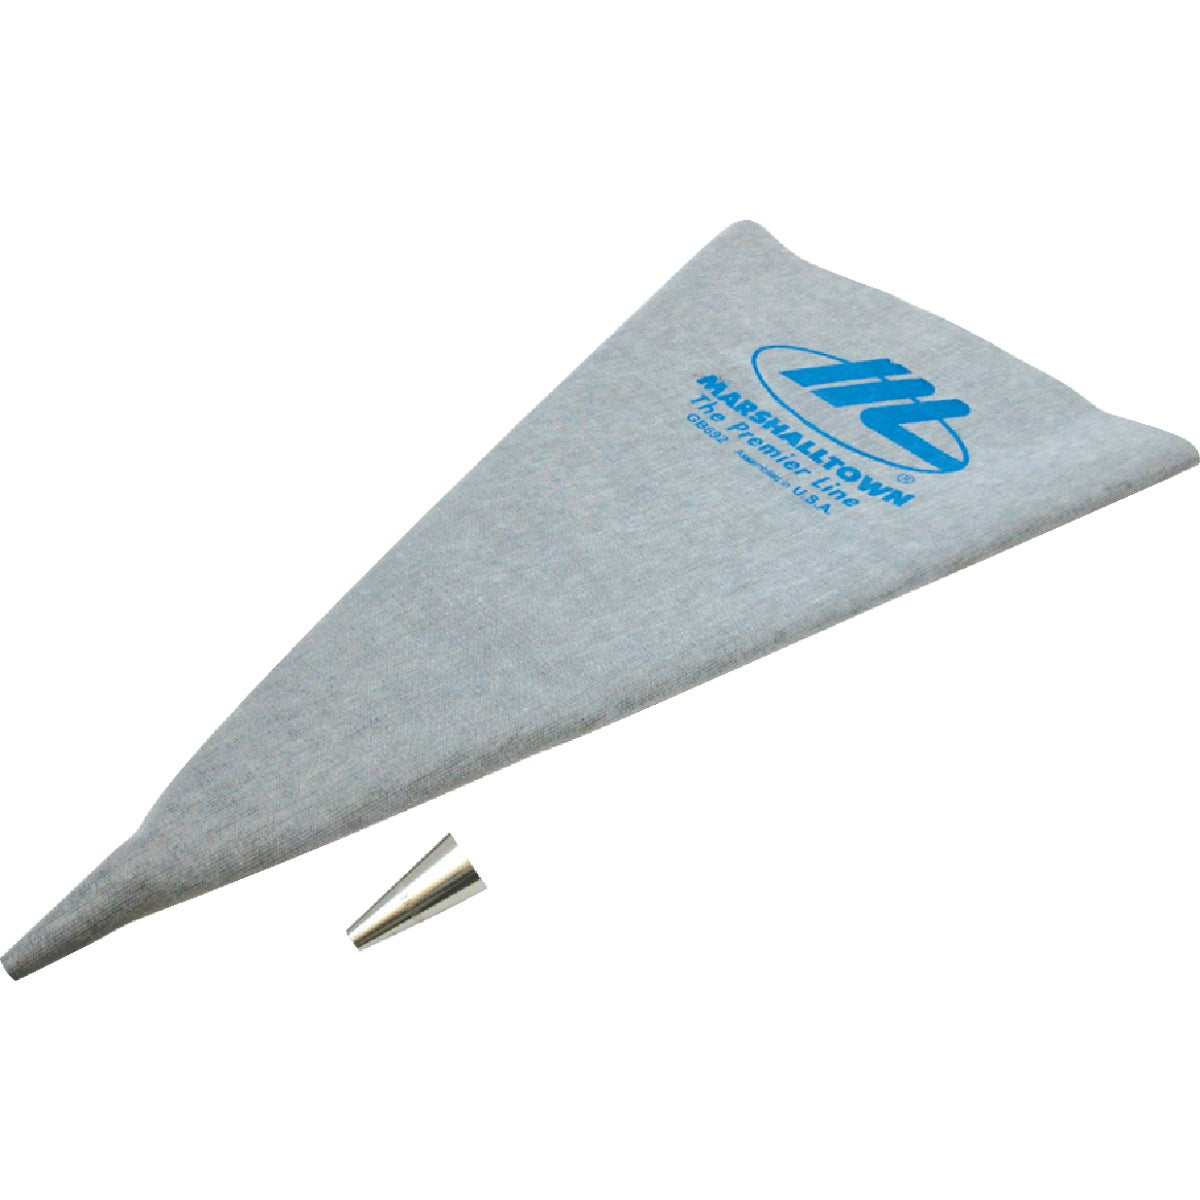 GB692 12X24 GROUT BAG - 17818 by Marshalltown Trowel